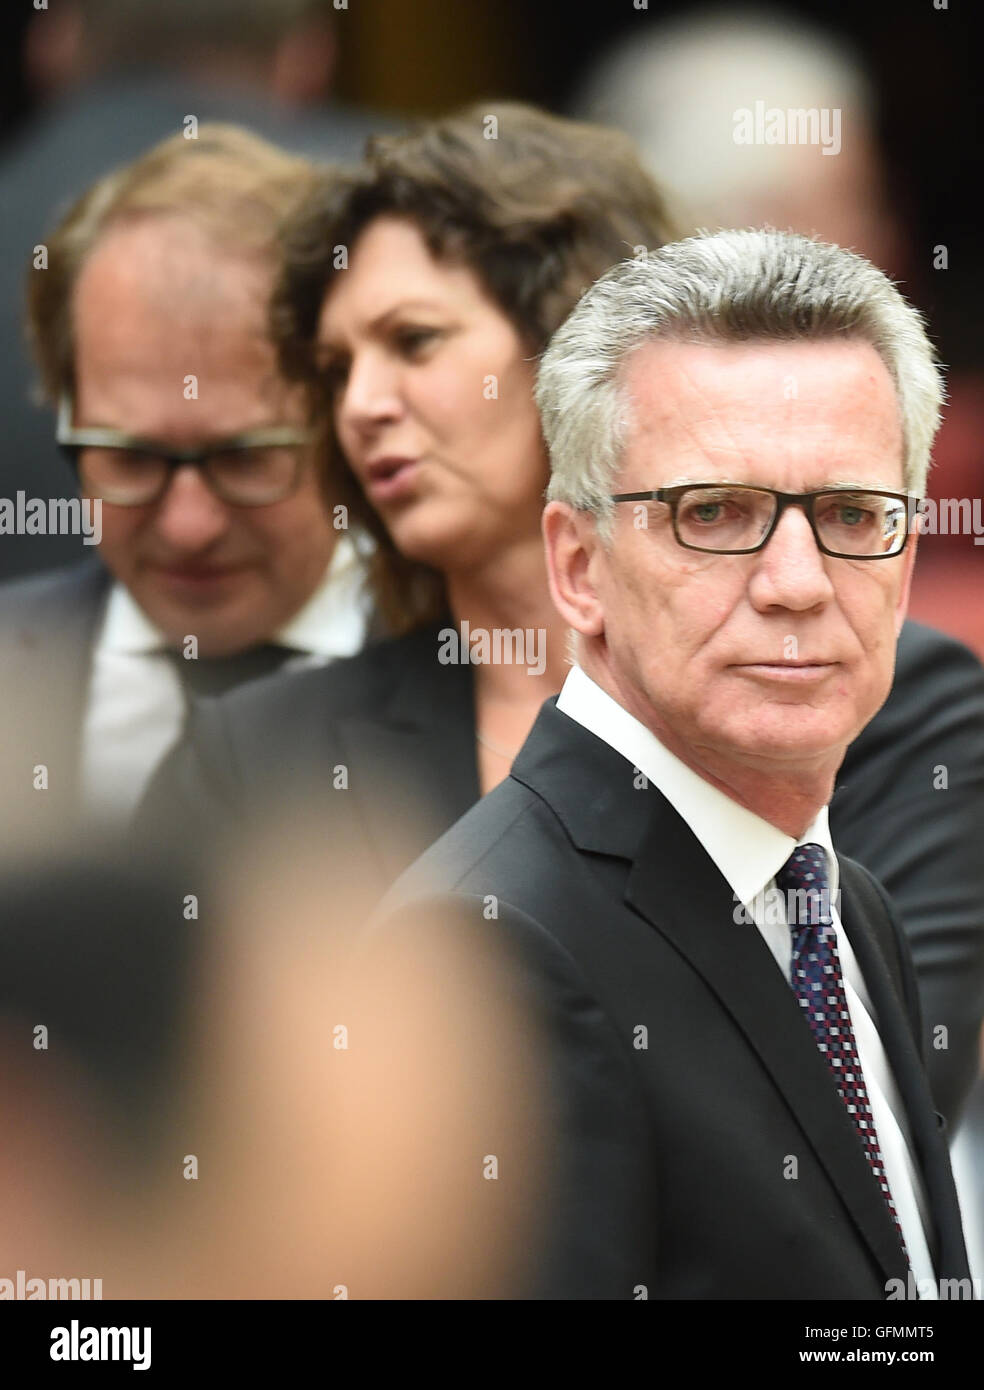 Munich, Germany. 31st July, 2016. German Interior Minister Thomas de Maiziere (CDU, r-l), the Deputy Prime Minister - Stock Image